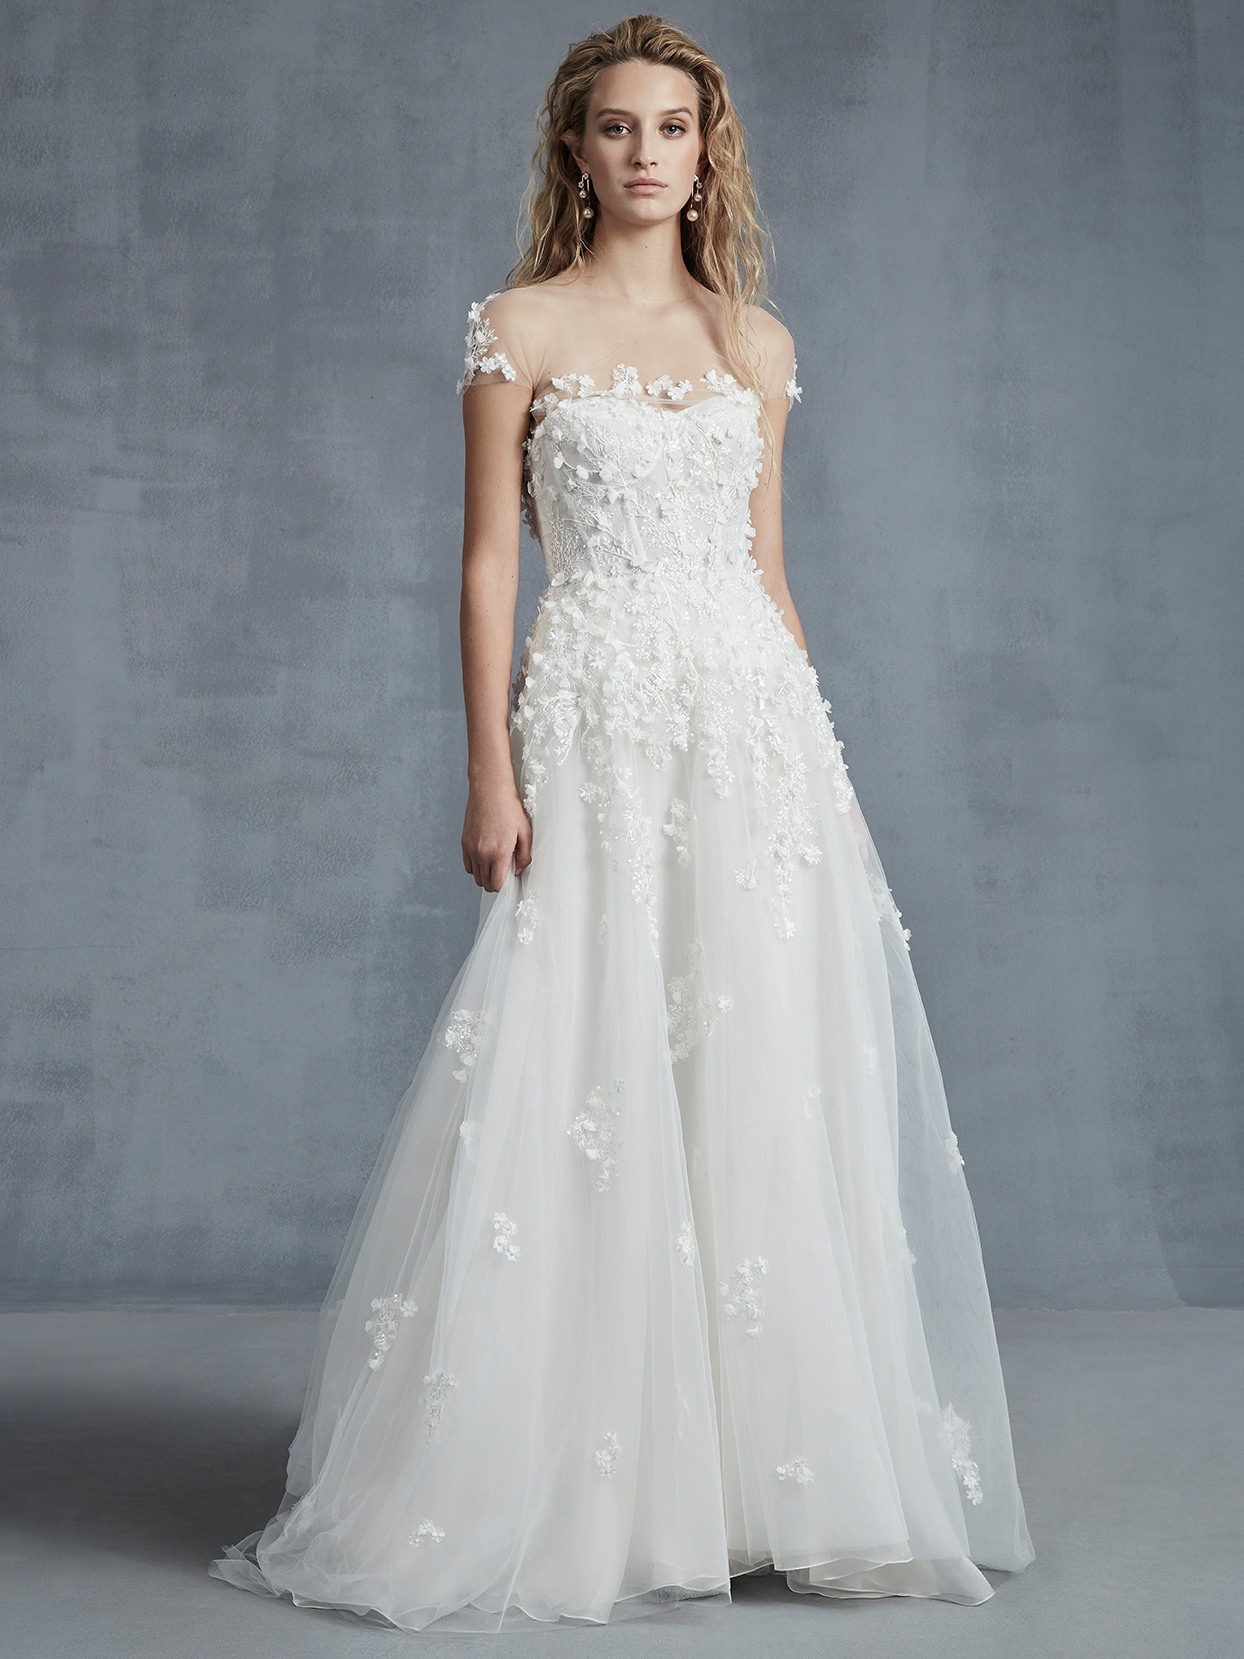 Ines Di Santo tulle skirt a-line wedding dress fall 2021